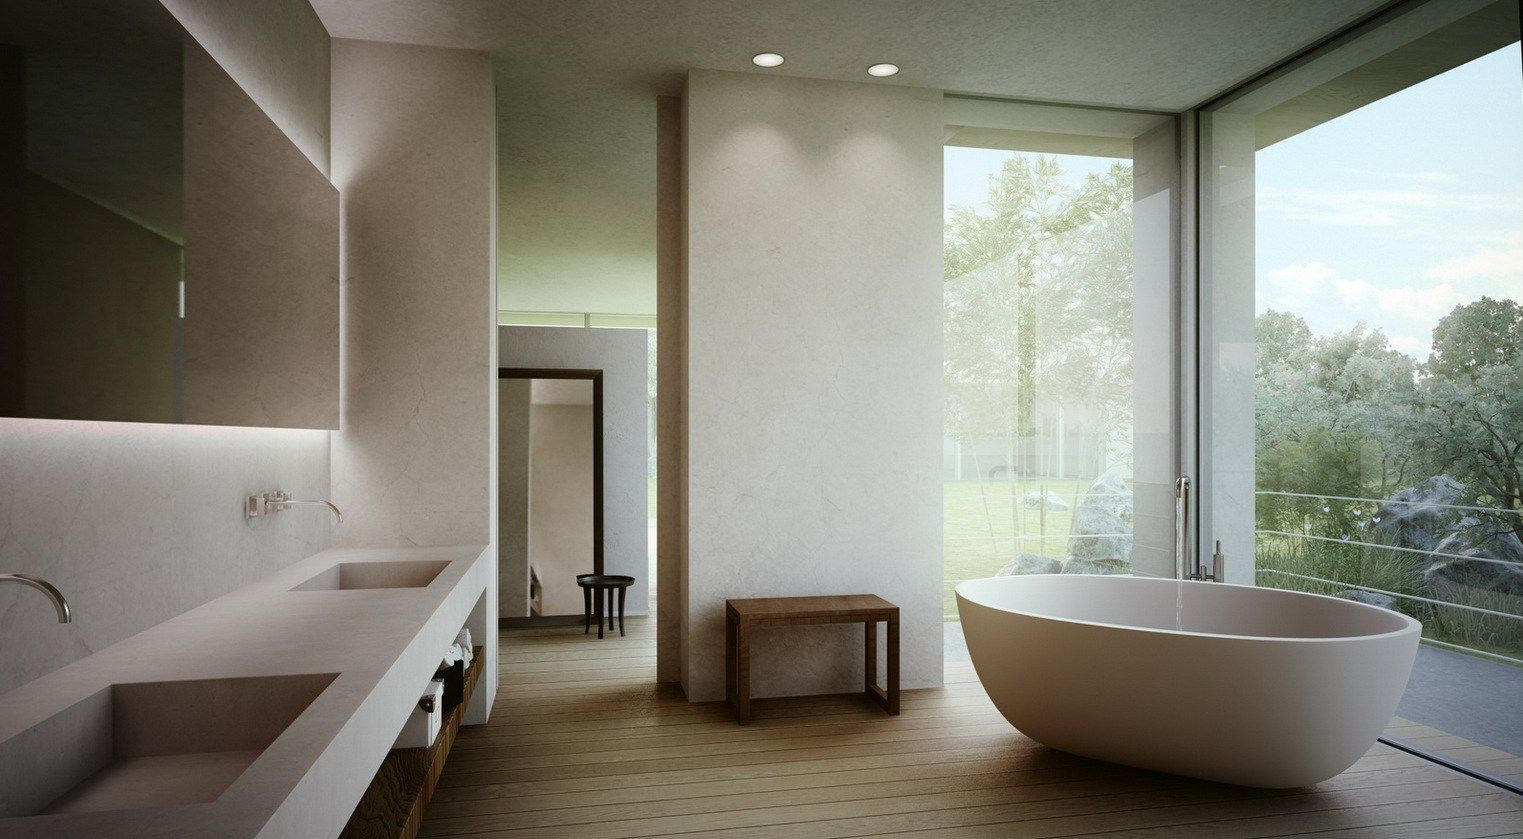 Master bathroom give serene natural bathing experience modern